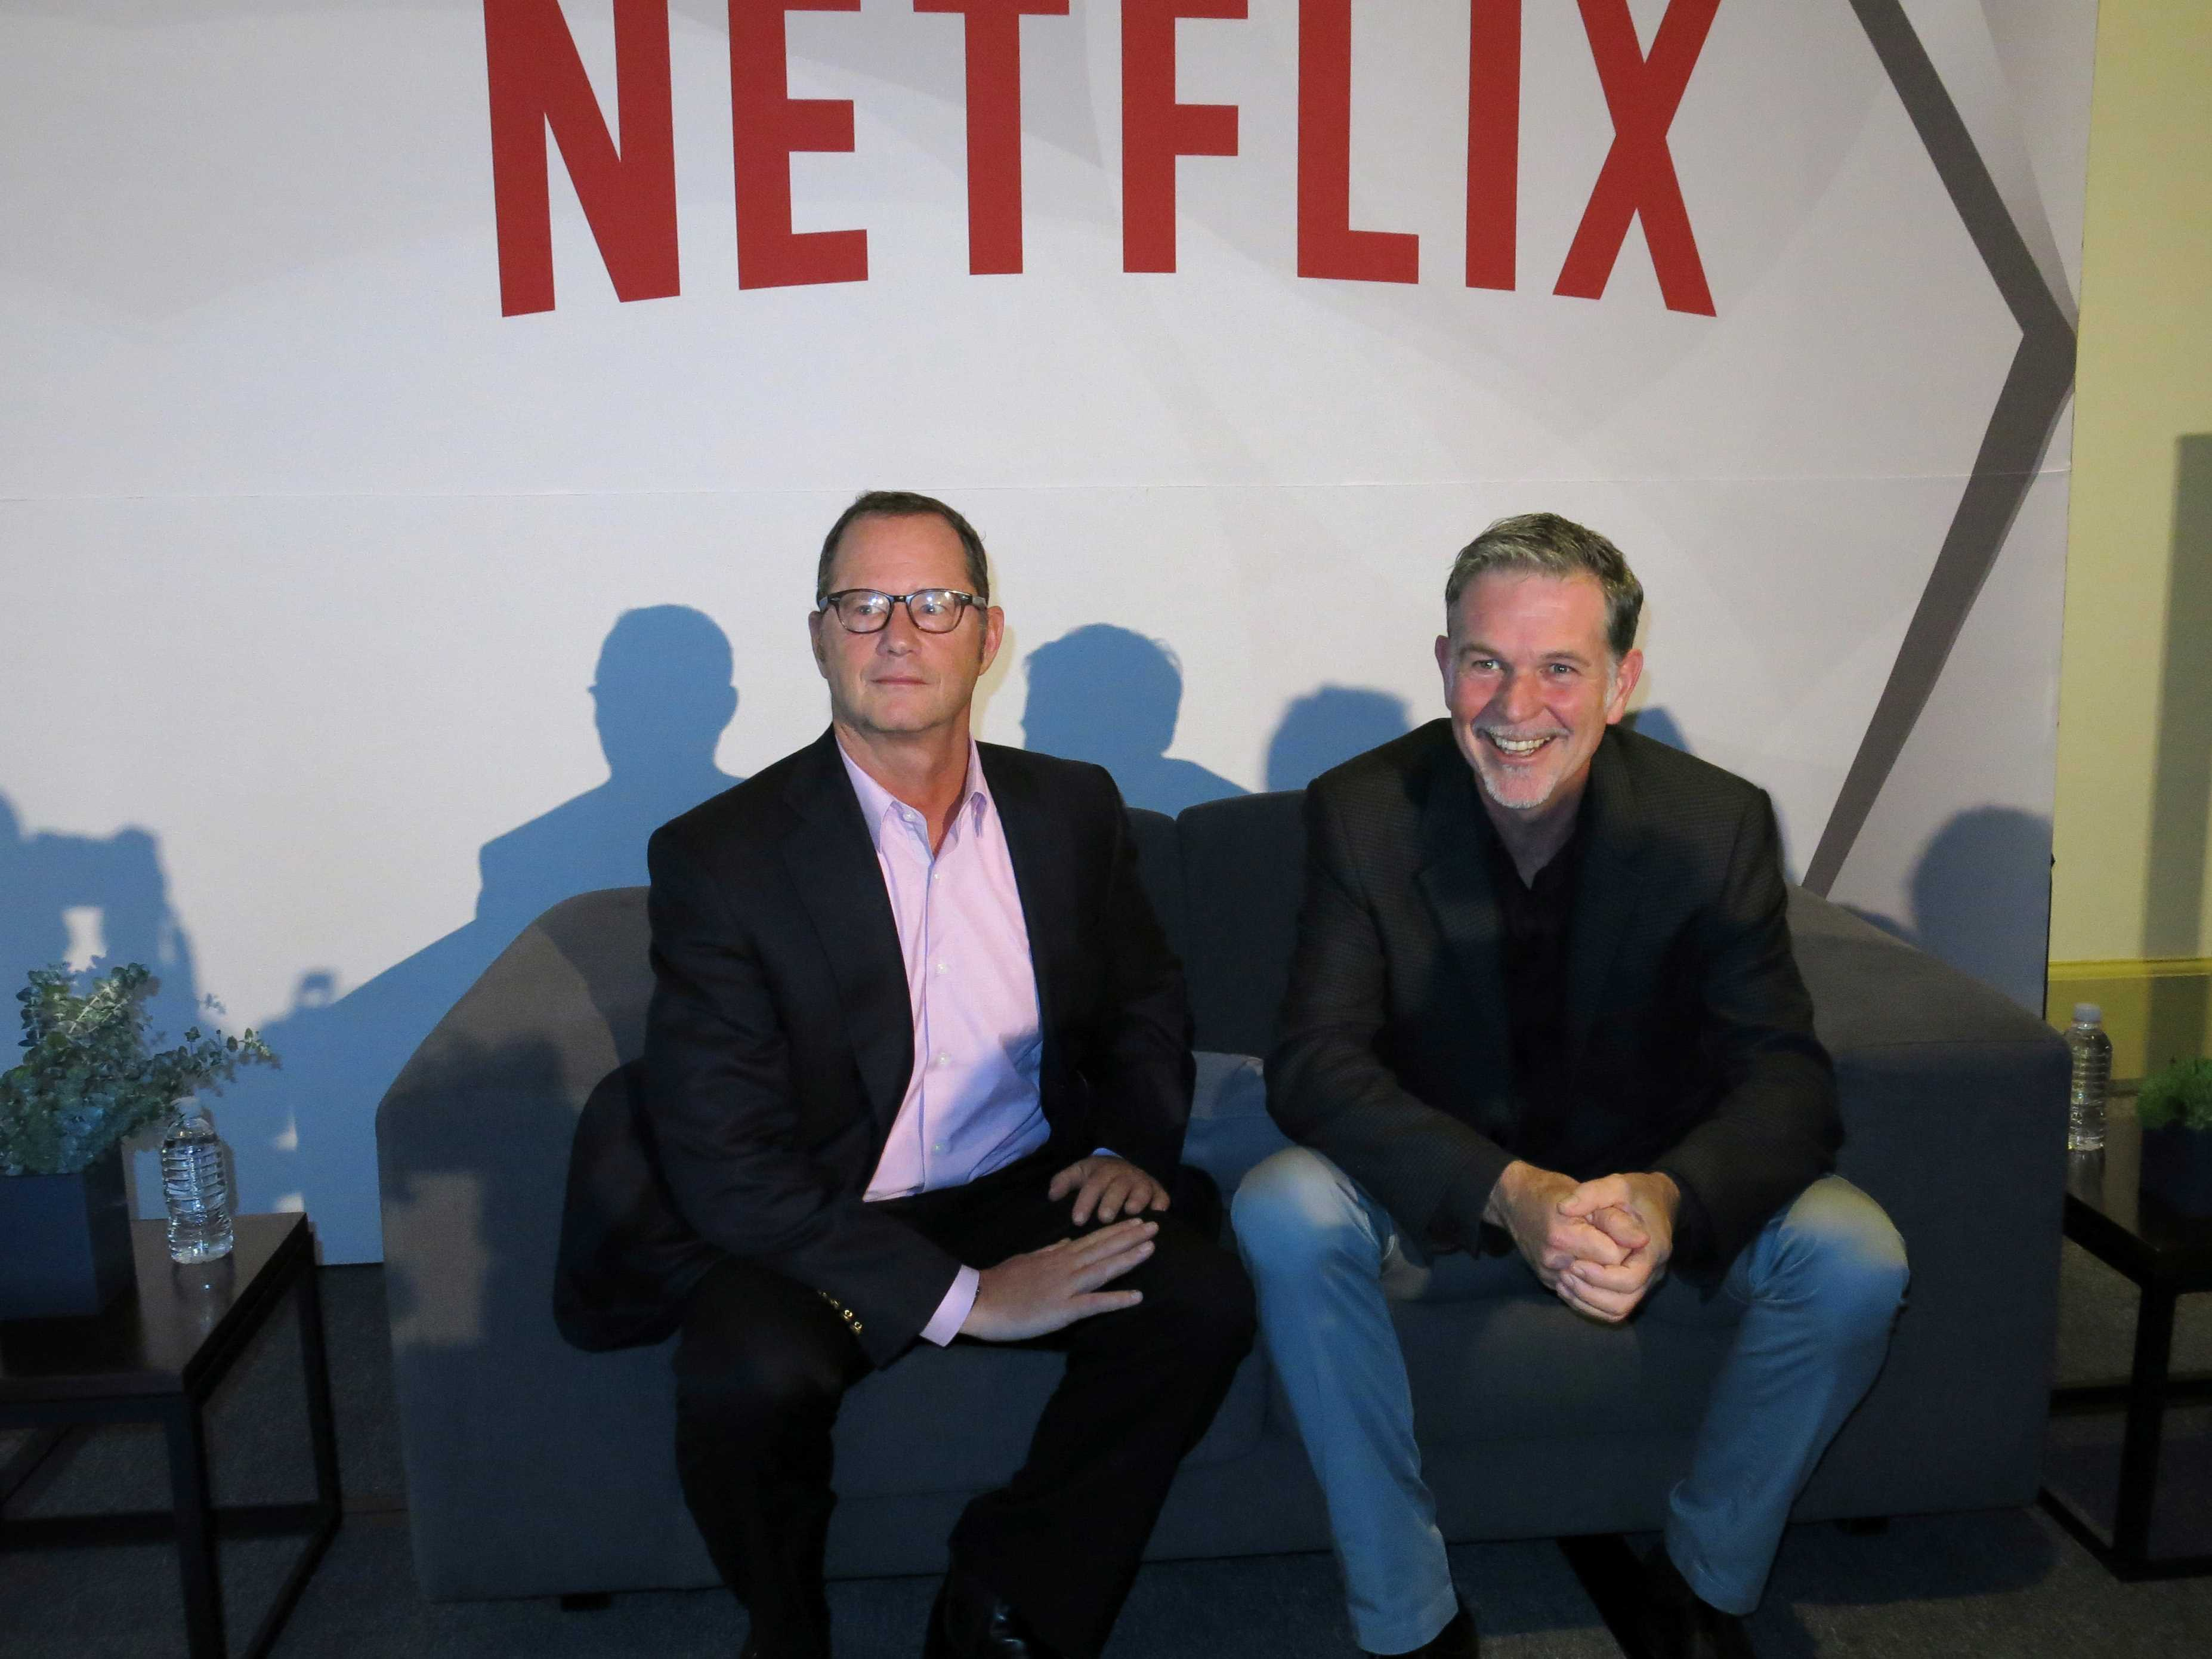 Netflix's Top Spokesman Fired over Use of Racial Term